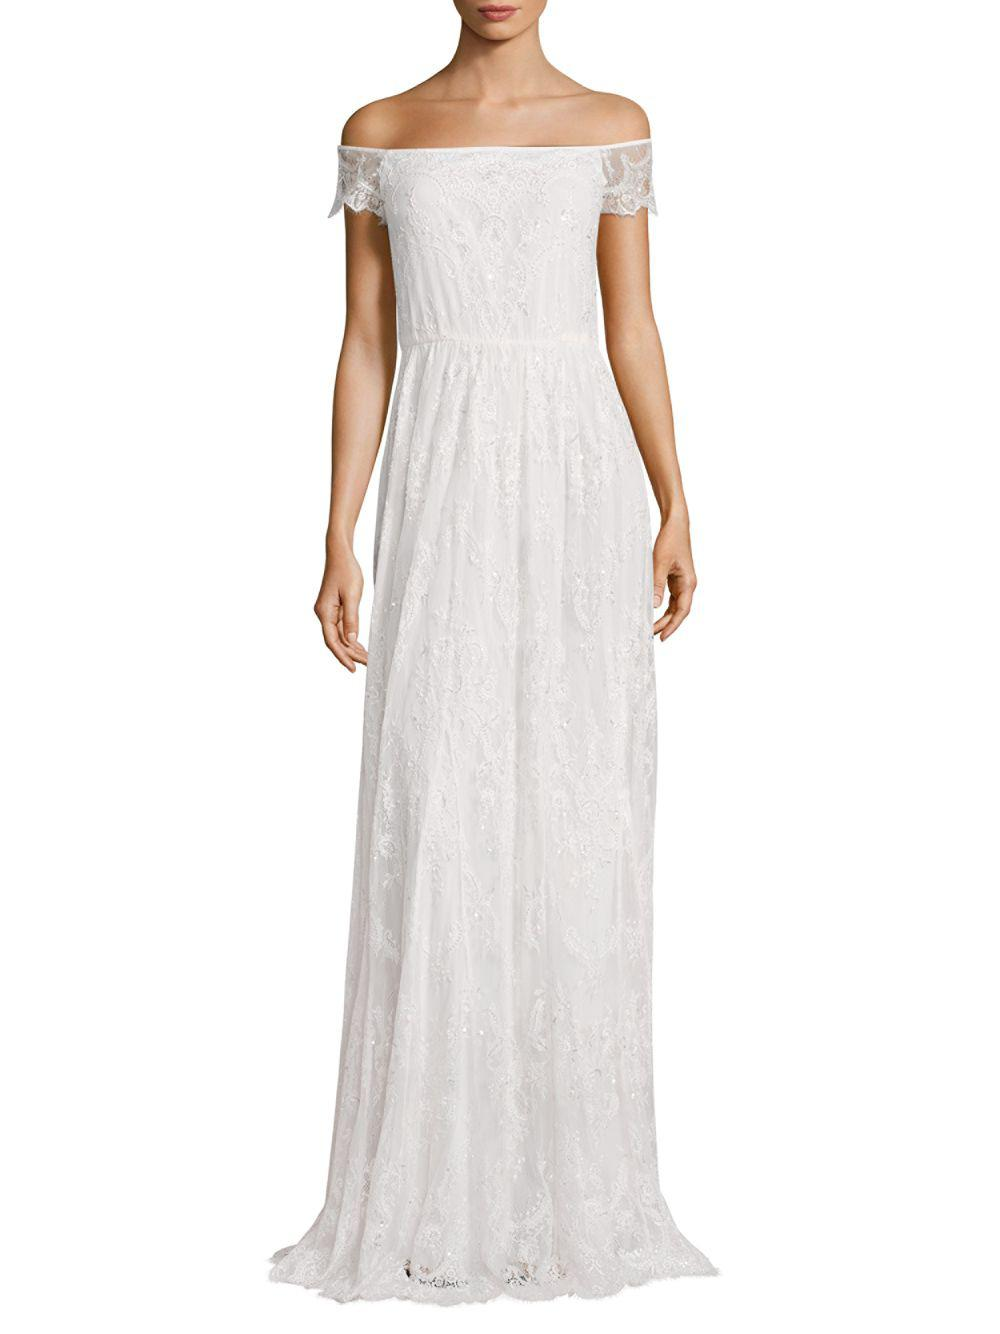 Lyst - Alice + Olivia Aurelia Embellished Gown in White - Save ...